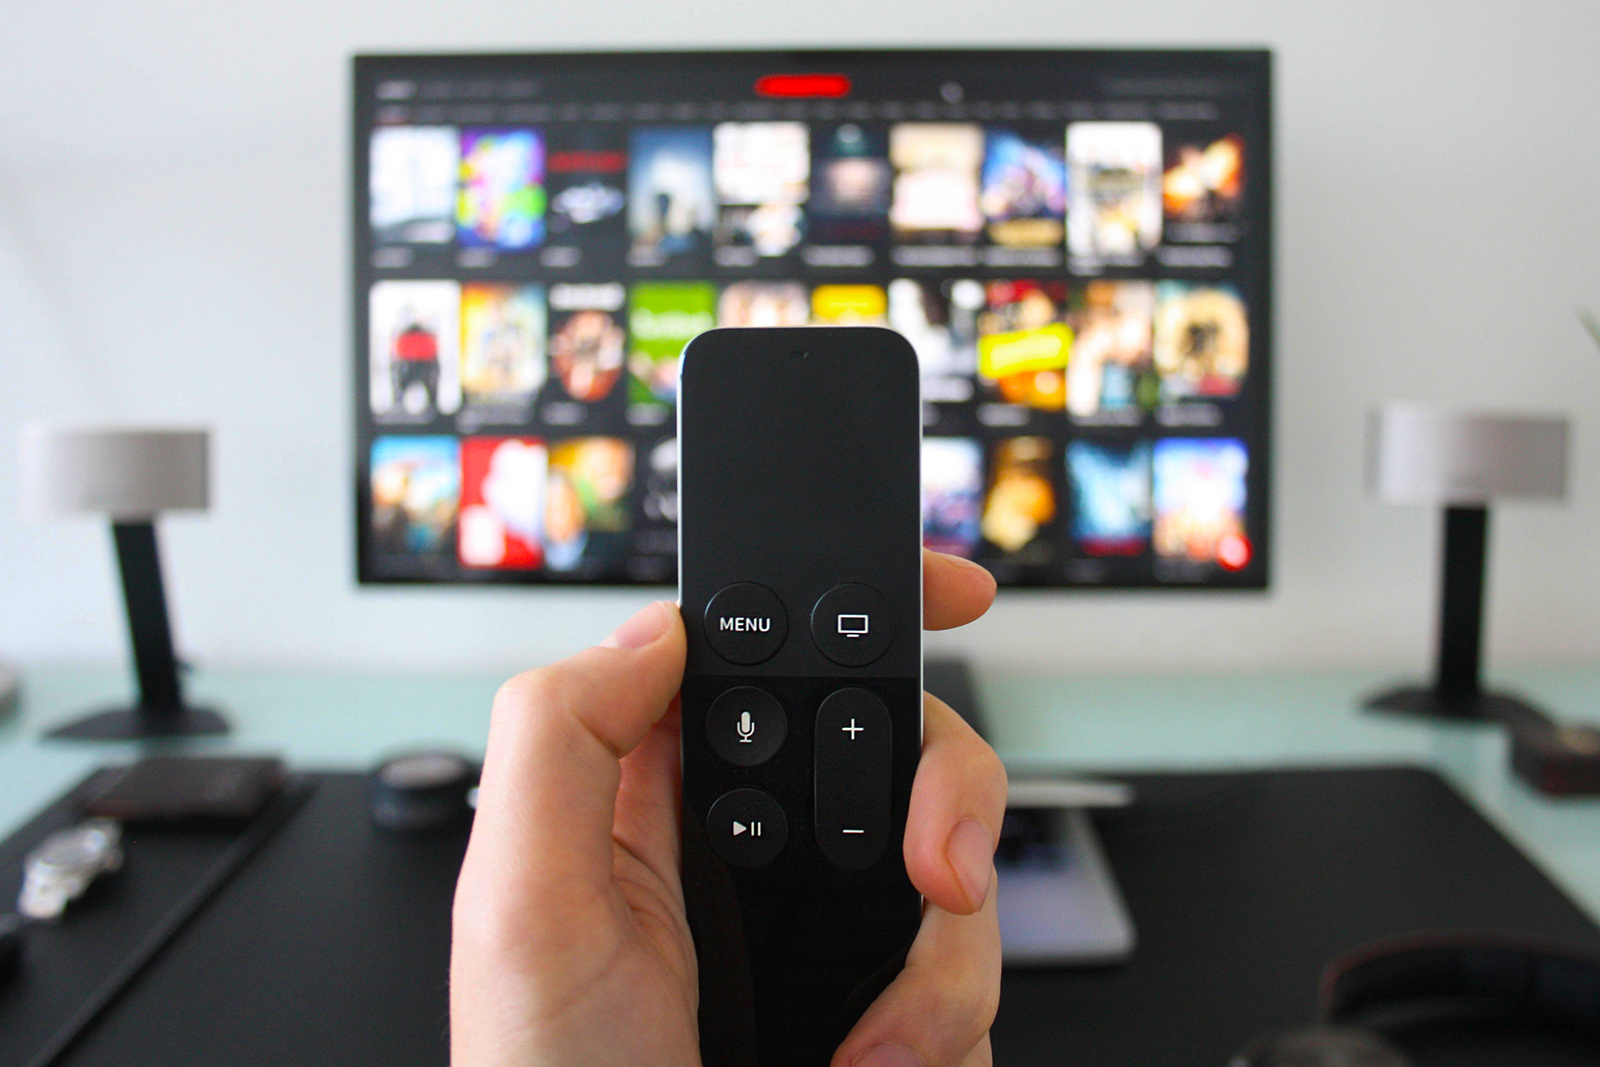 10 Netflix alternatives that stream movies and TV shows for free